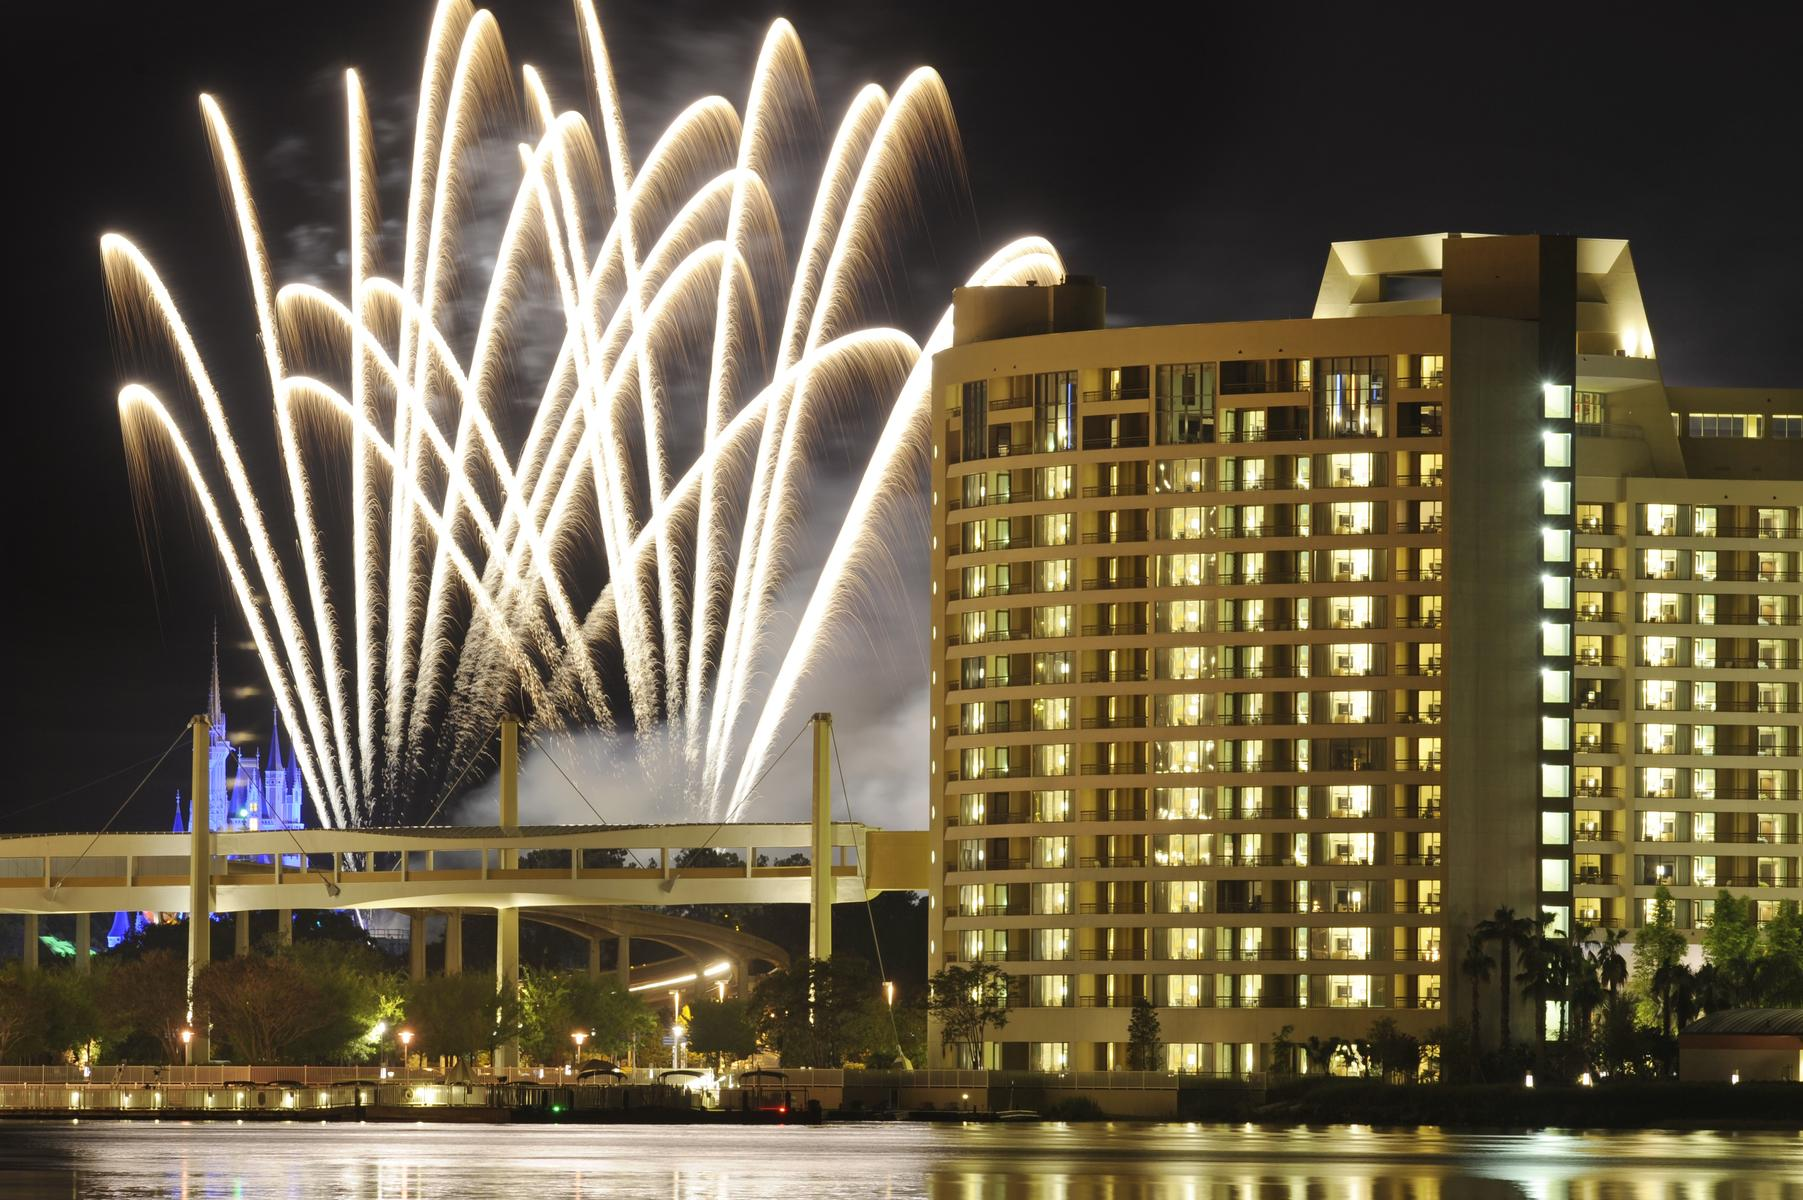 NYE Walt Disney World Contemporary Resort